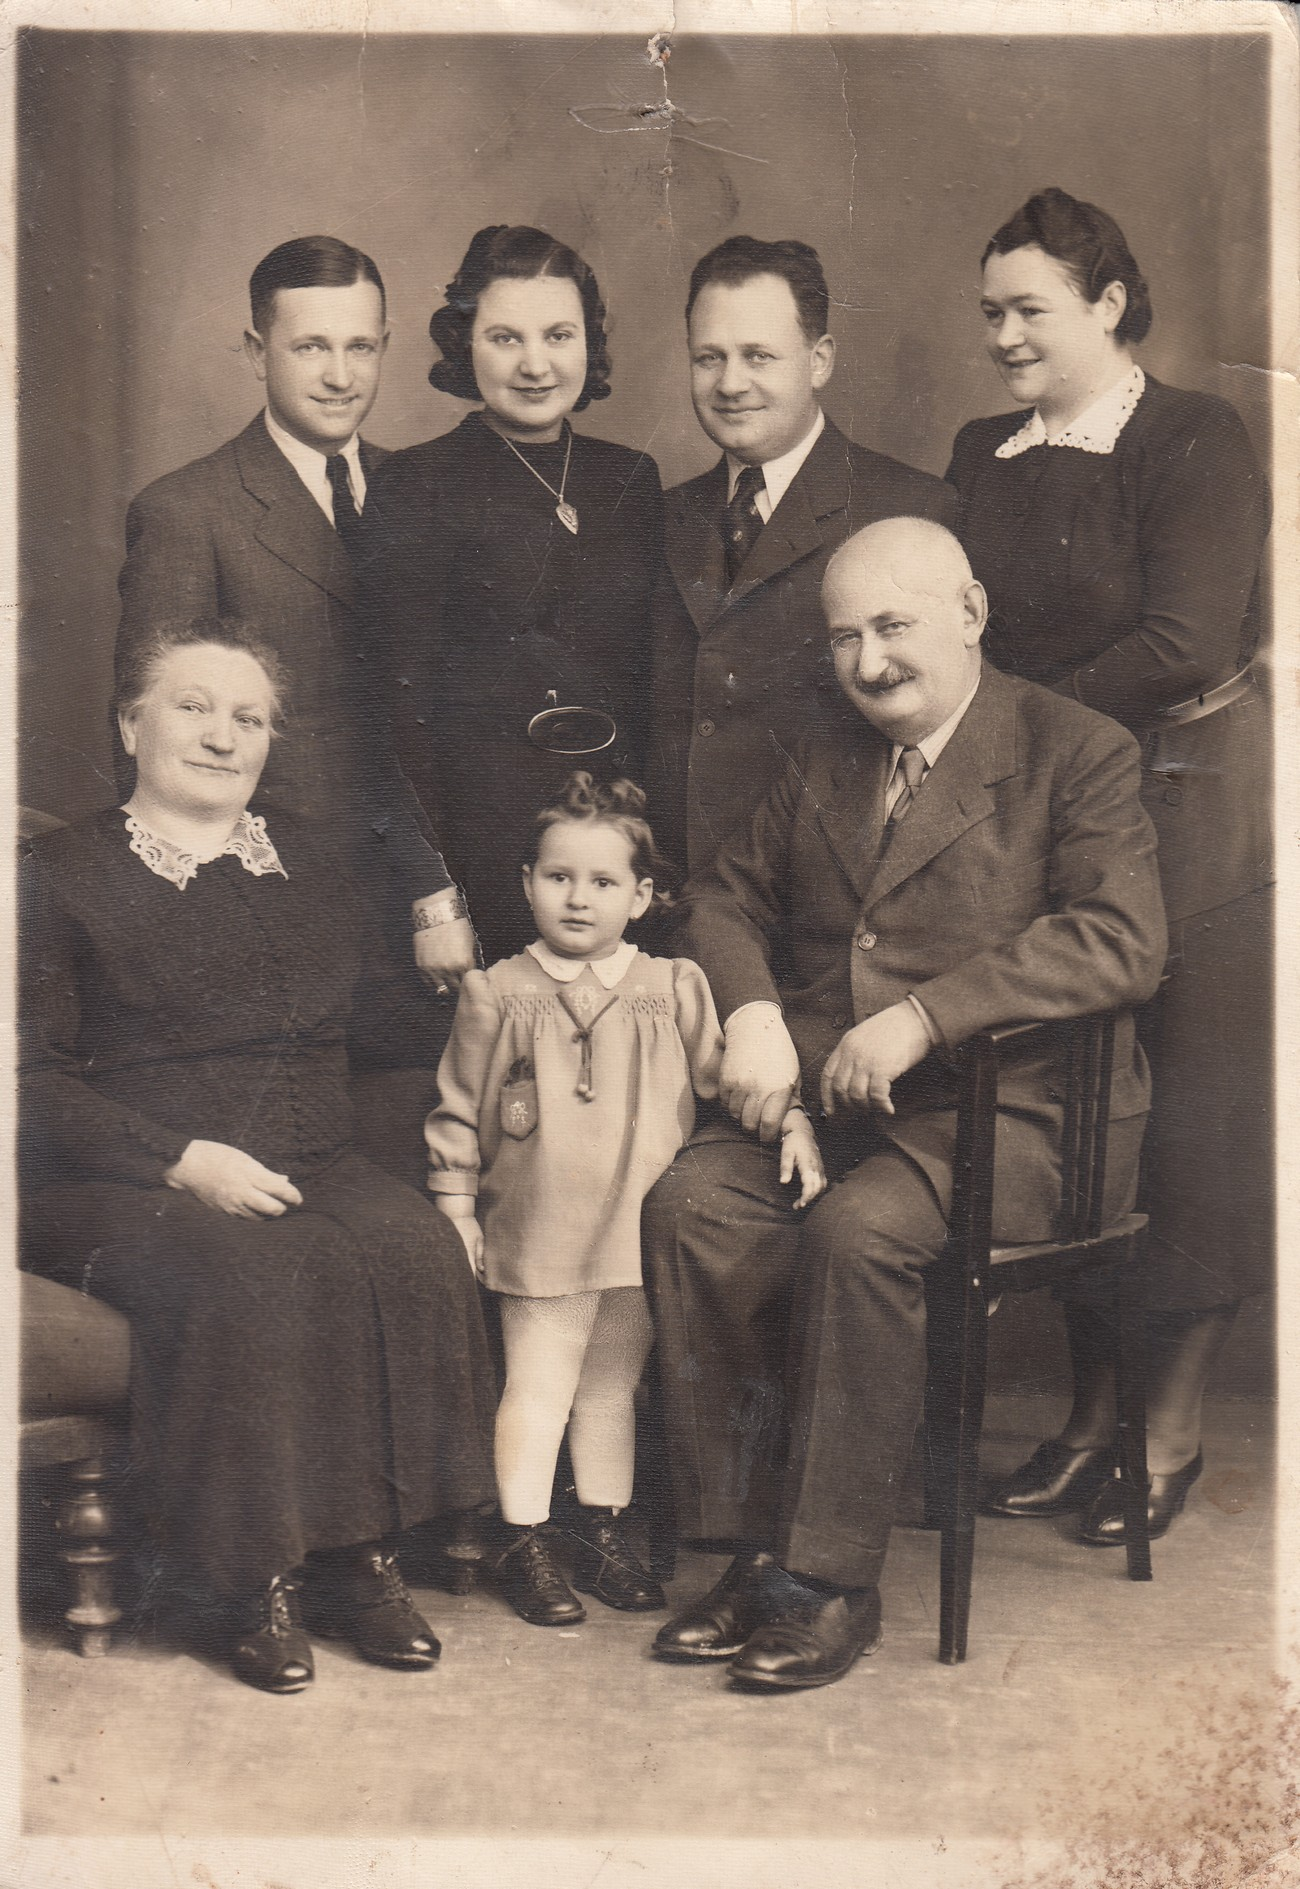 The Blau family from Lendava. Ludvik Blau (standing second from the right) survived the war. The photograph is kept by Renata Lešnjak.